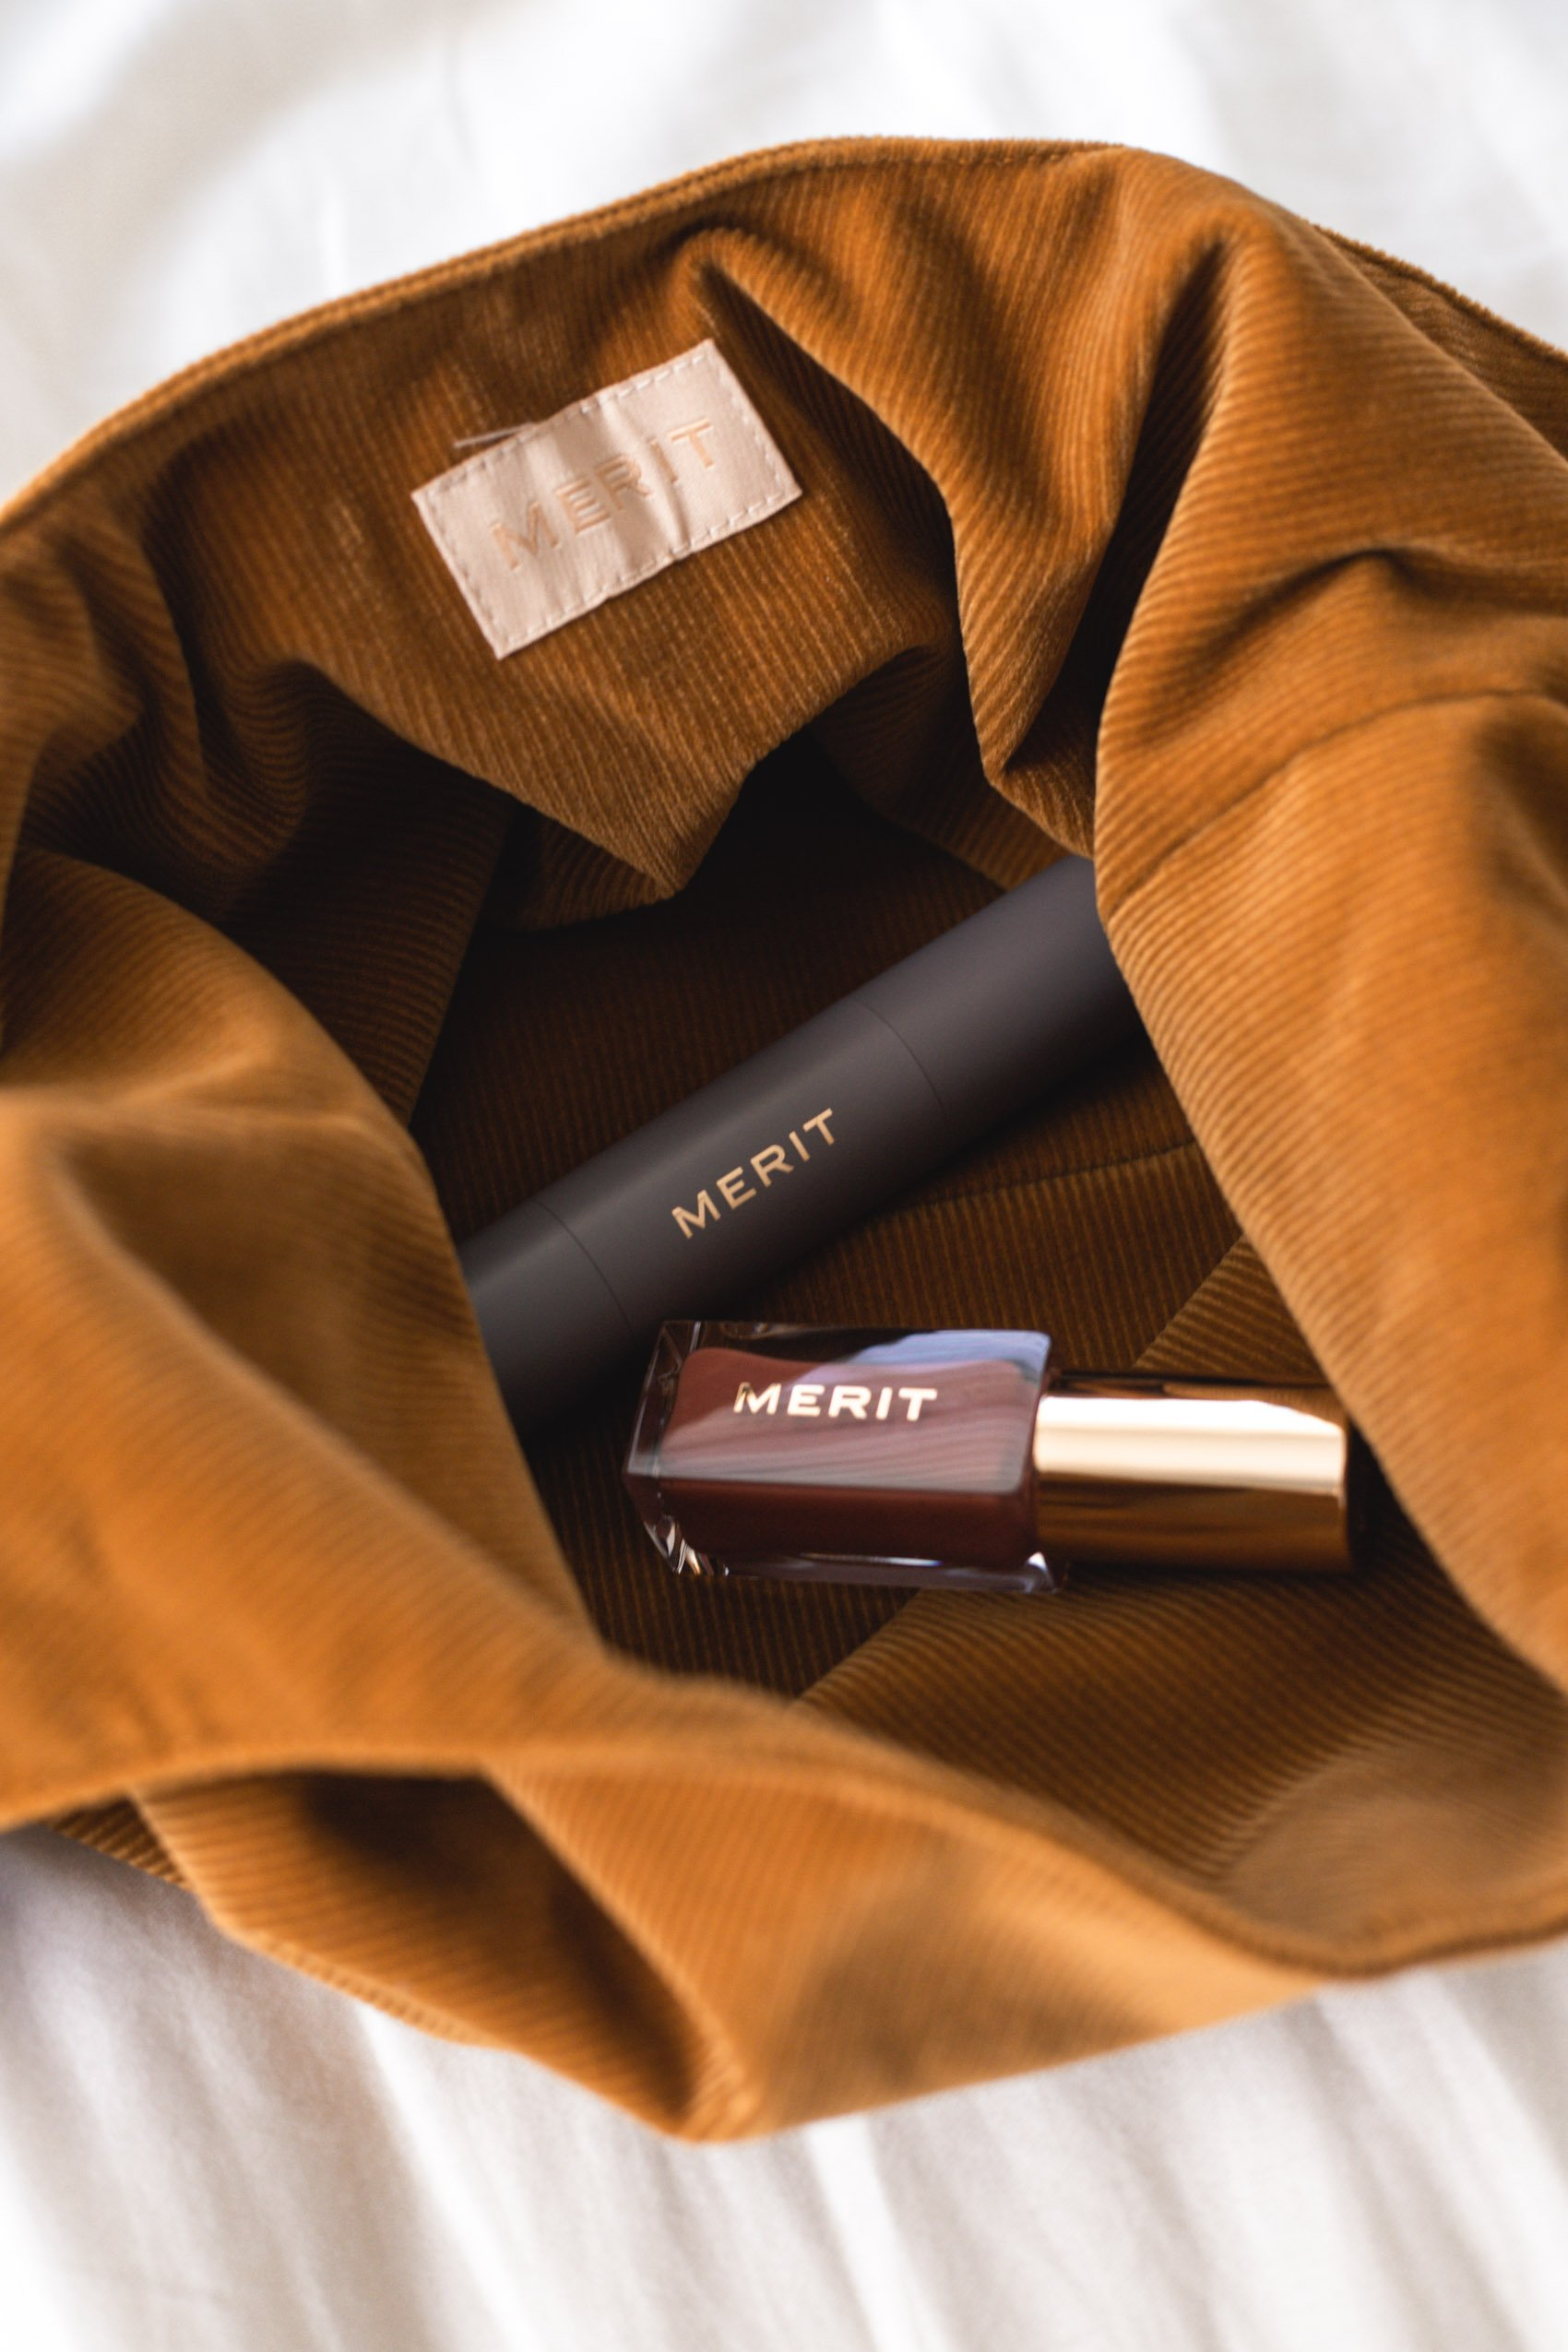 Merit Beauty Bag with Perfecting Complexion Foundation and Tinted Lip Oil